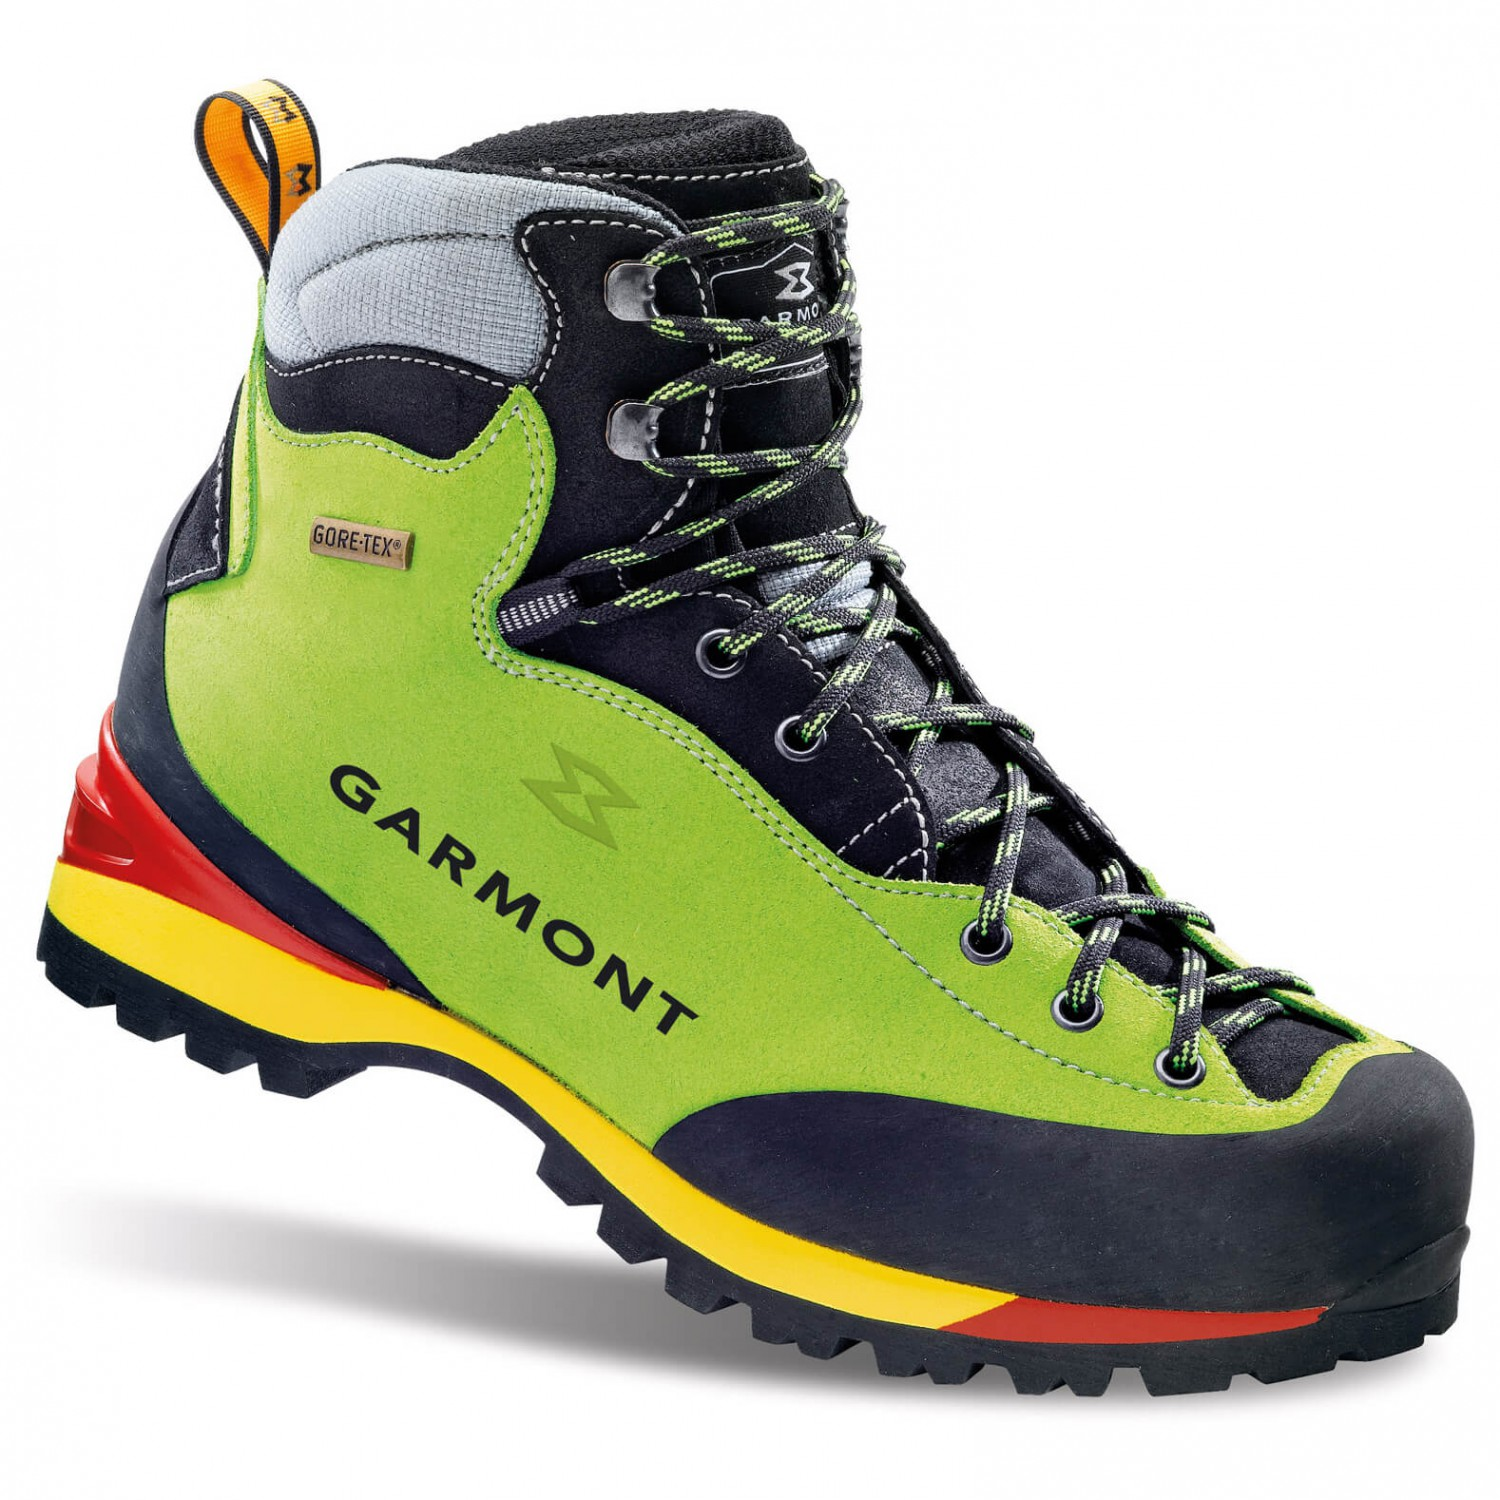 garmont ferrata gtx trekking boots free uk delivery. Black Bedroom Furniture Sets. Home Design Ideas